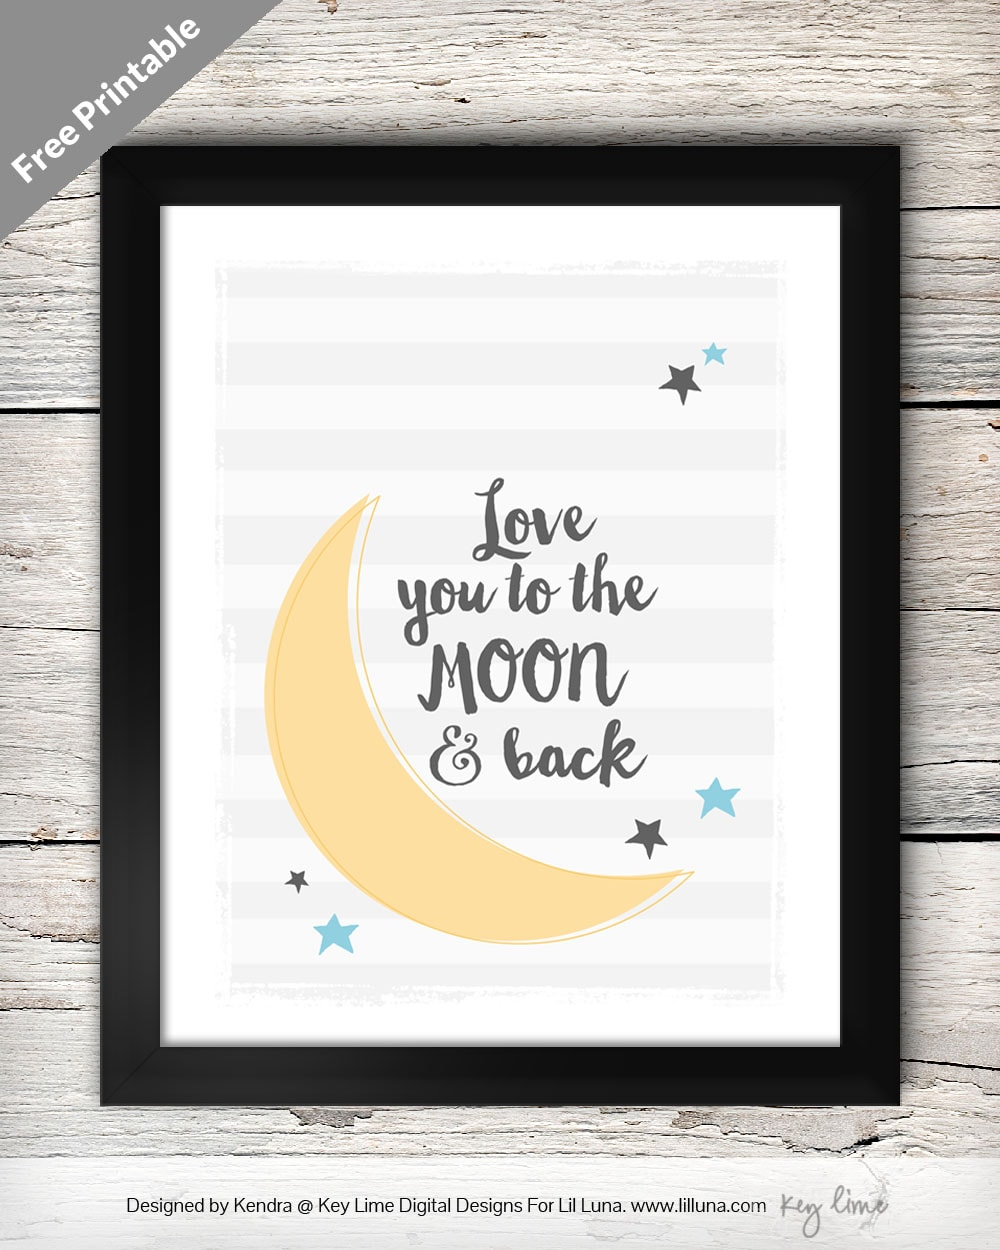 I Love You To The Moon And Back Pictures : pictures, Print, Let's, Kritsyn, Merkley